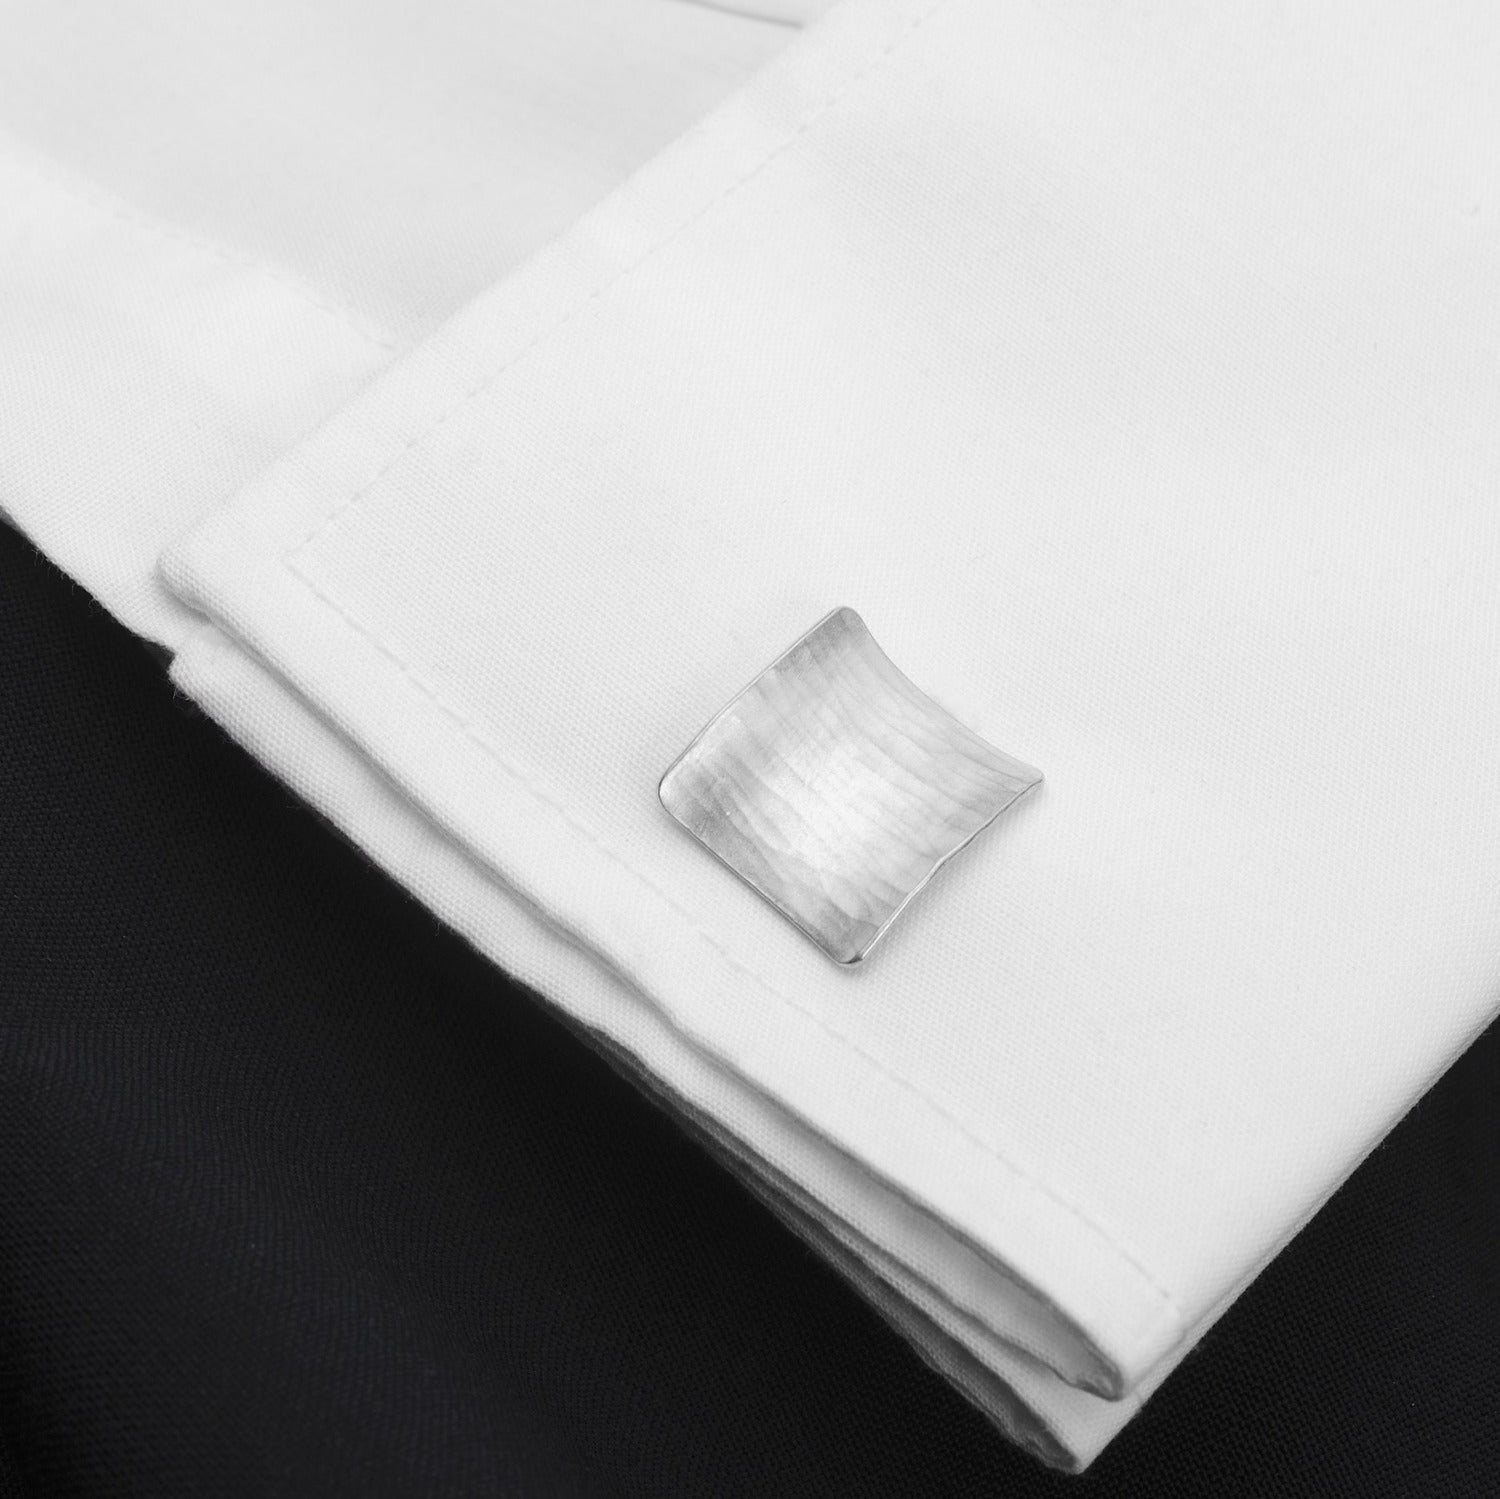 Square cufflink on a shirt cuff (not in wear)